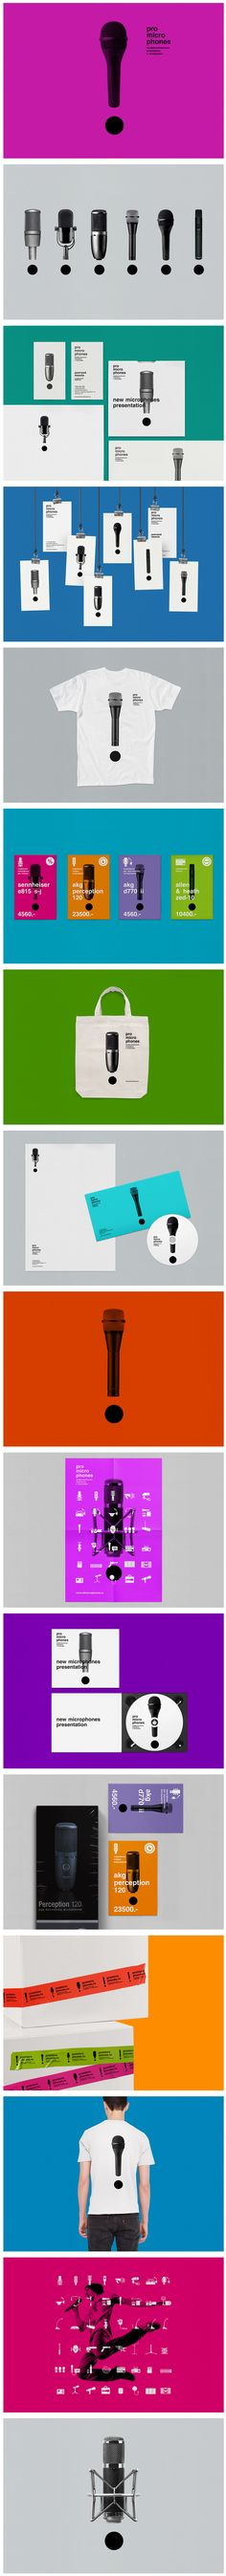 Microphones by Vova Lifanov